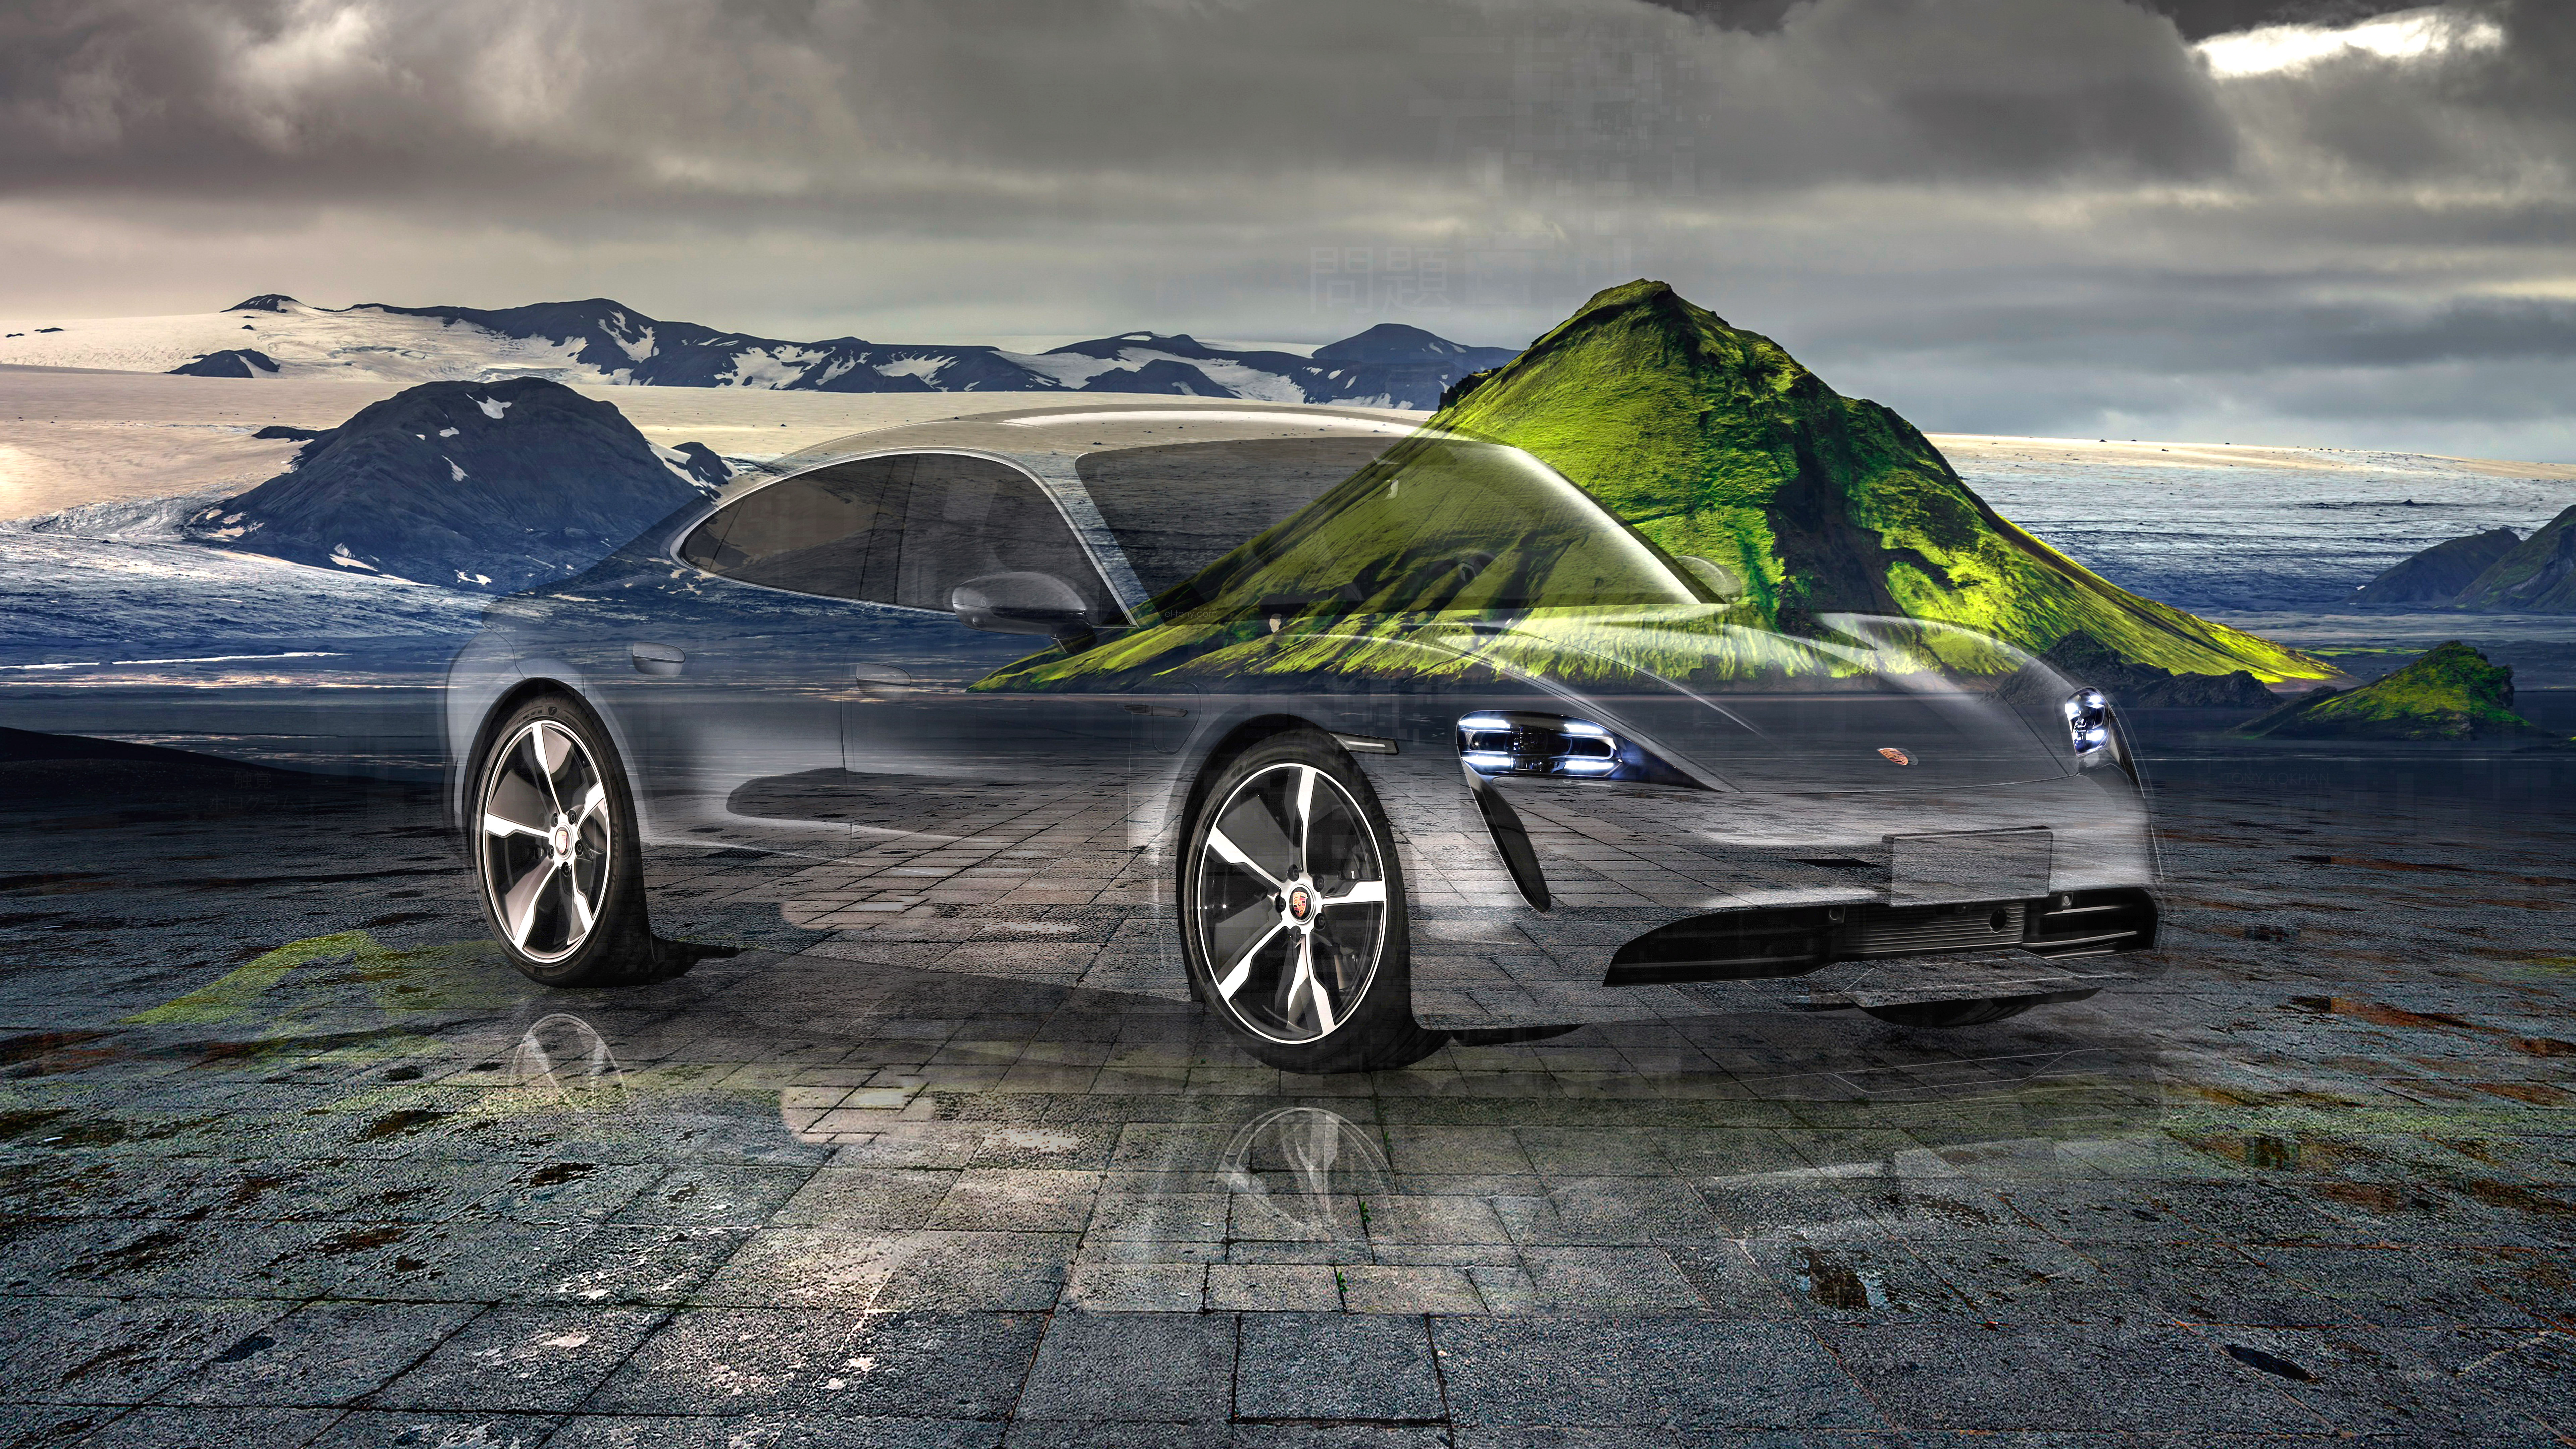 Porsche-Taycan-Super-Crystal-Problem-Soul-Nature-Mountain-Volcano-Tactile-Hologram-Art-Car-2020-Multicolors-8K-Wallpapers-design-by-Tony-Kokhan-www.el-tony.com-image